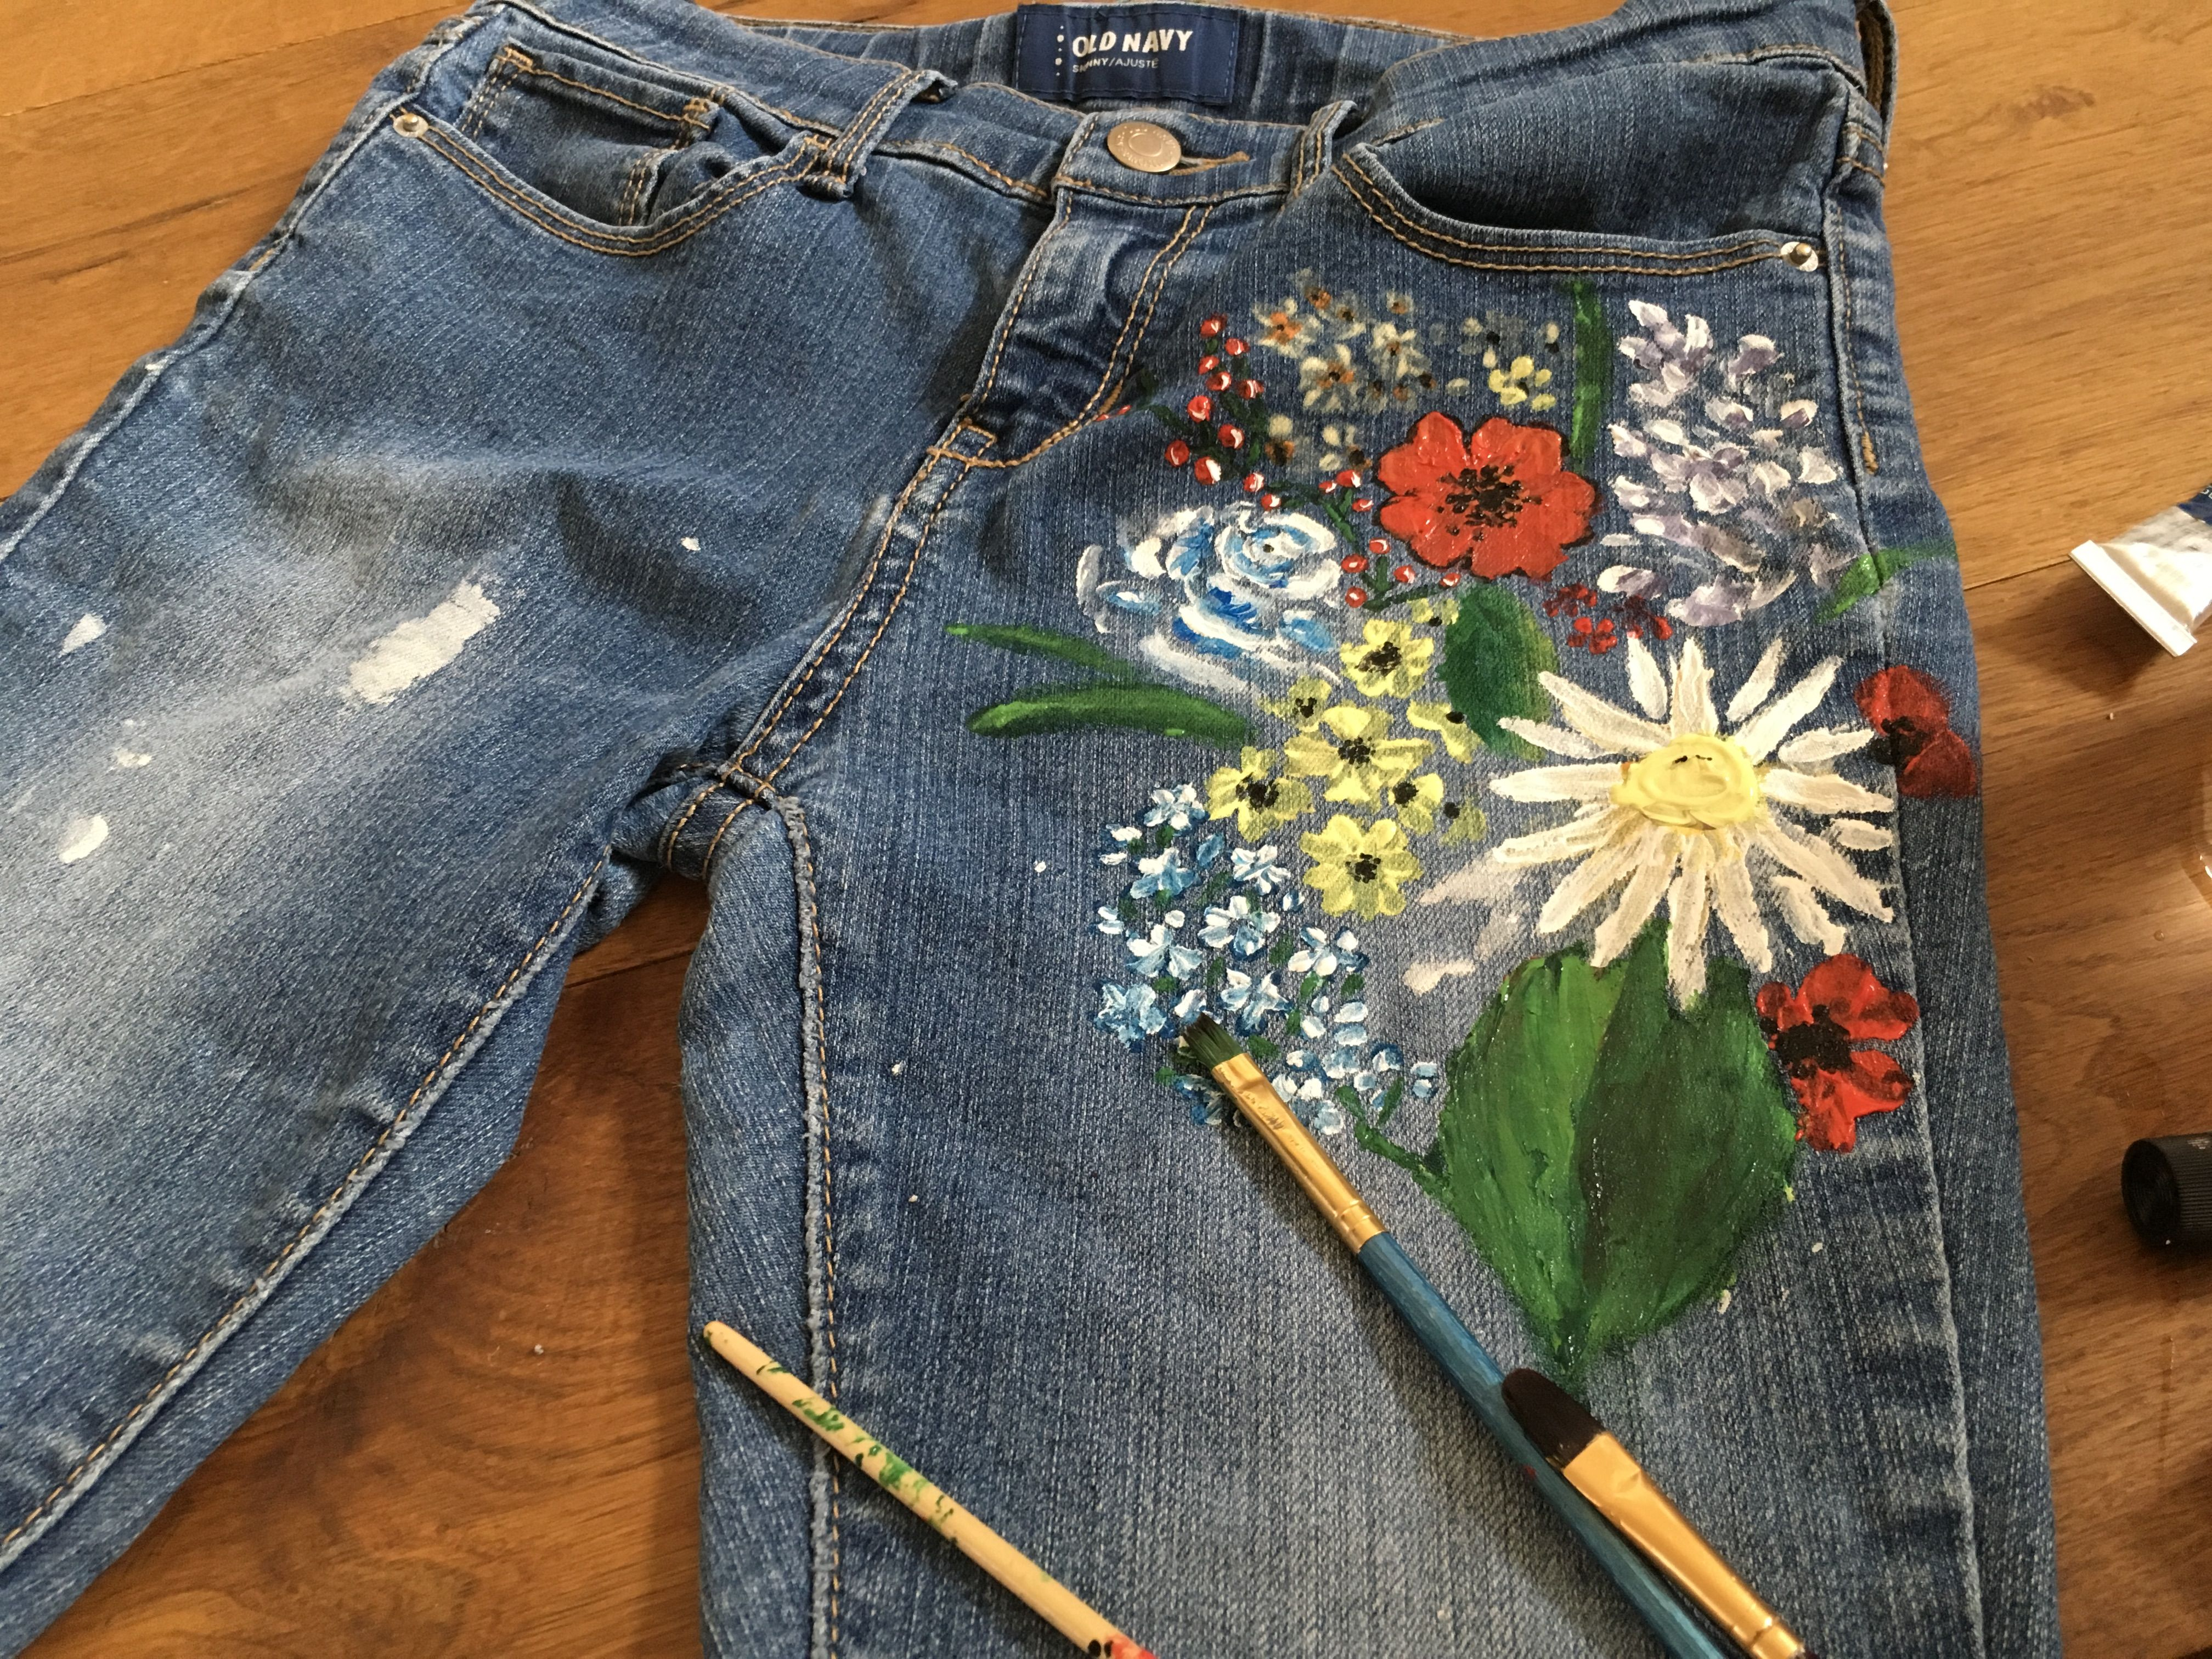 Painting on jeans Painted jeans, Painted clothes, Jeans diy